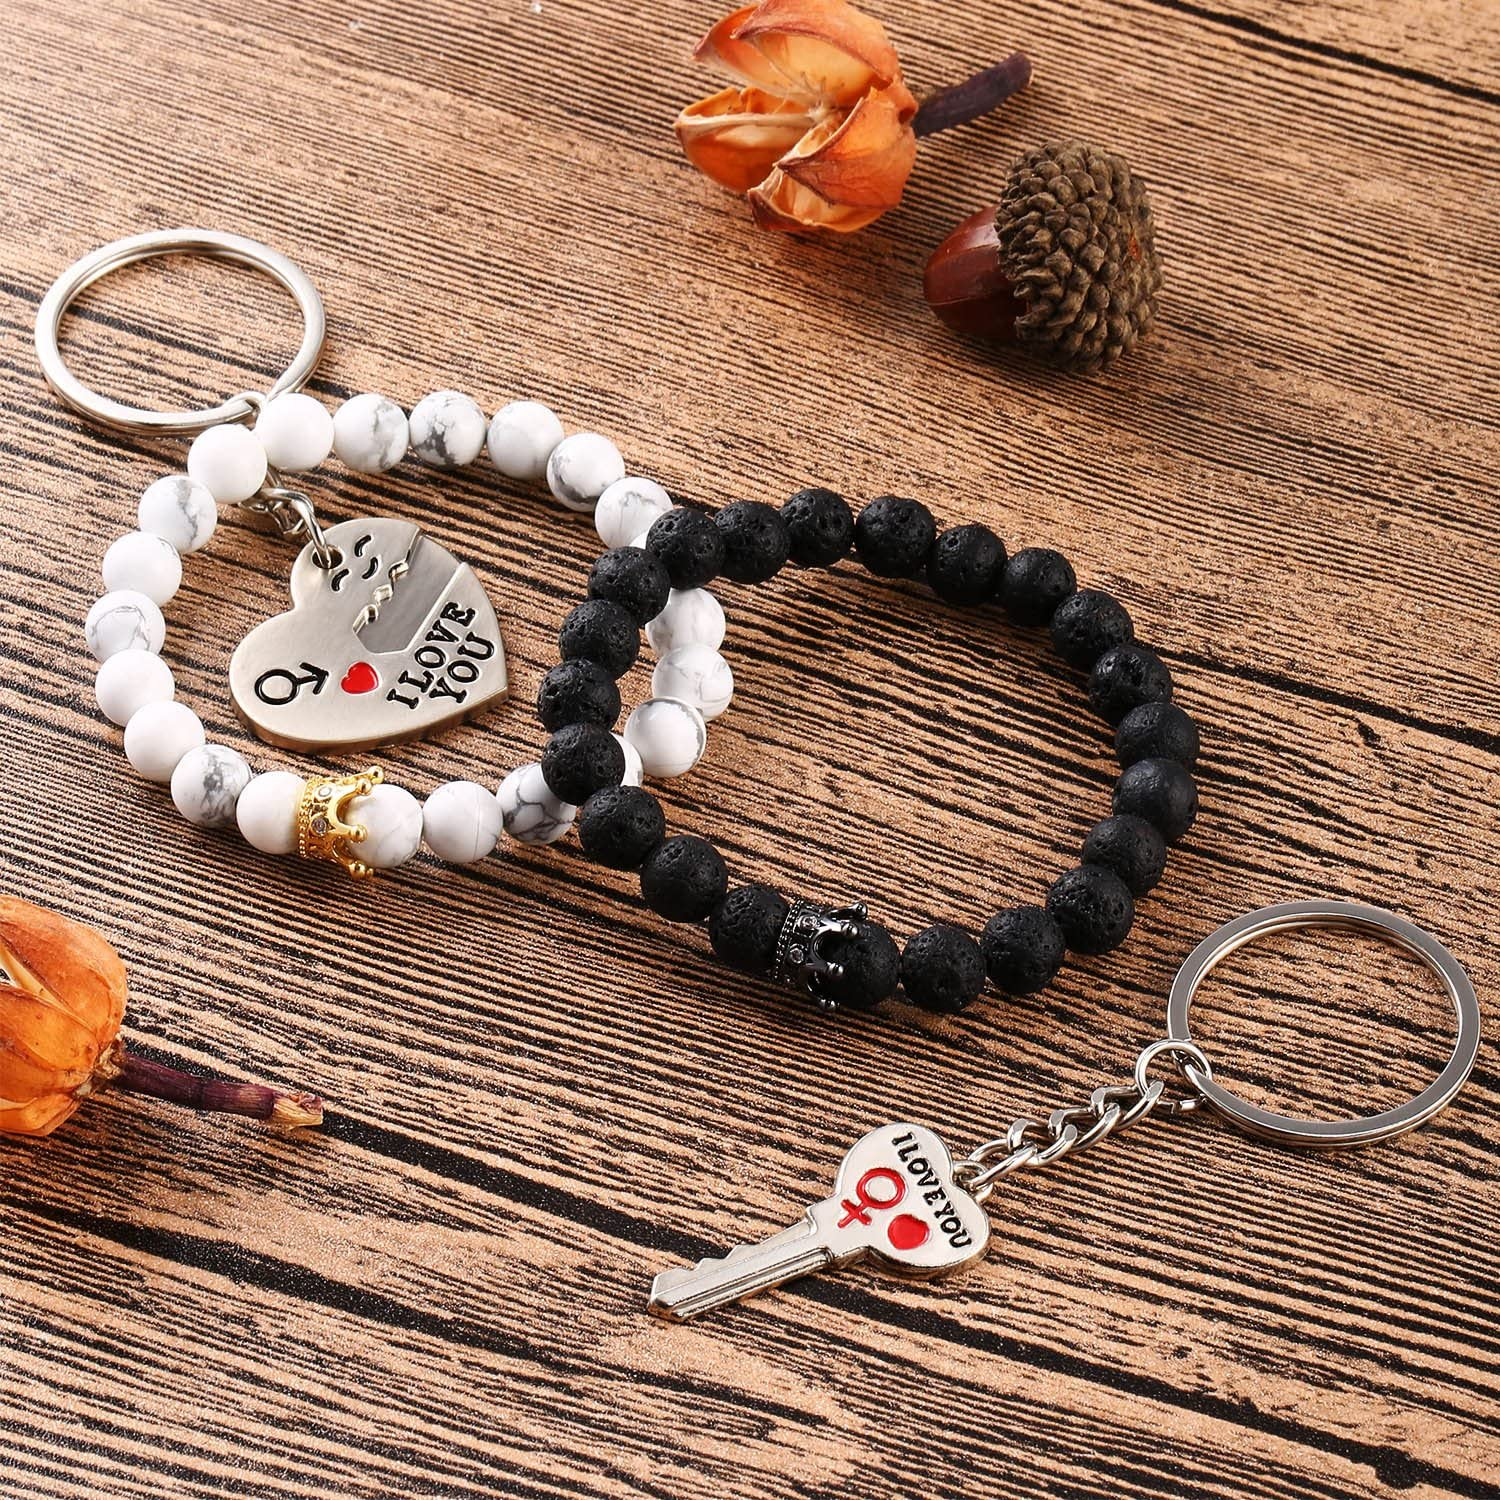 Gejoy Couples Bracelets Beads Bracelet Long Distance Bracelet and Key to Unlock My Heart Keychains for Lovers Friends